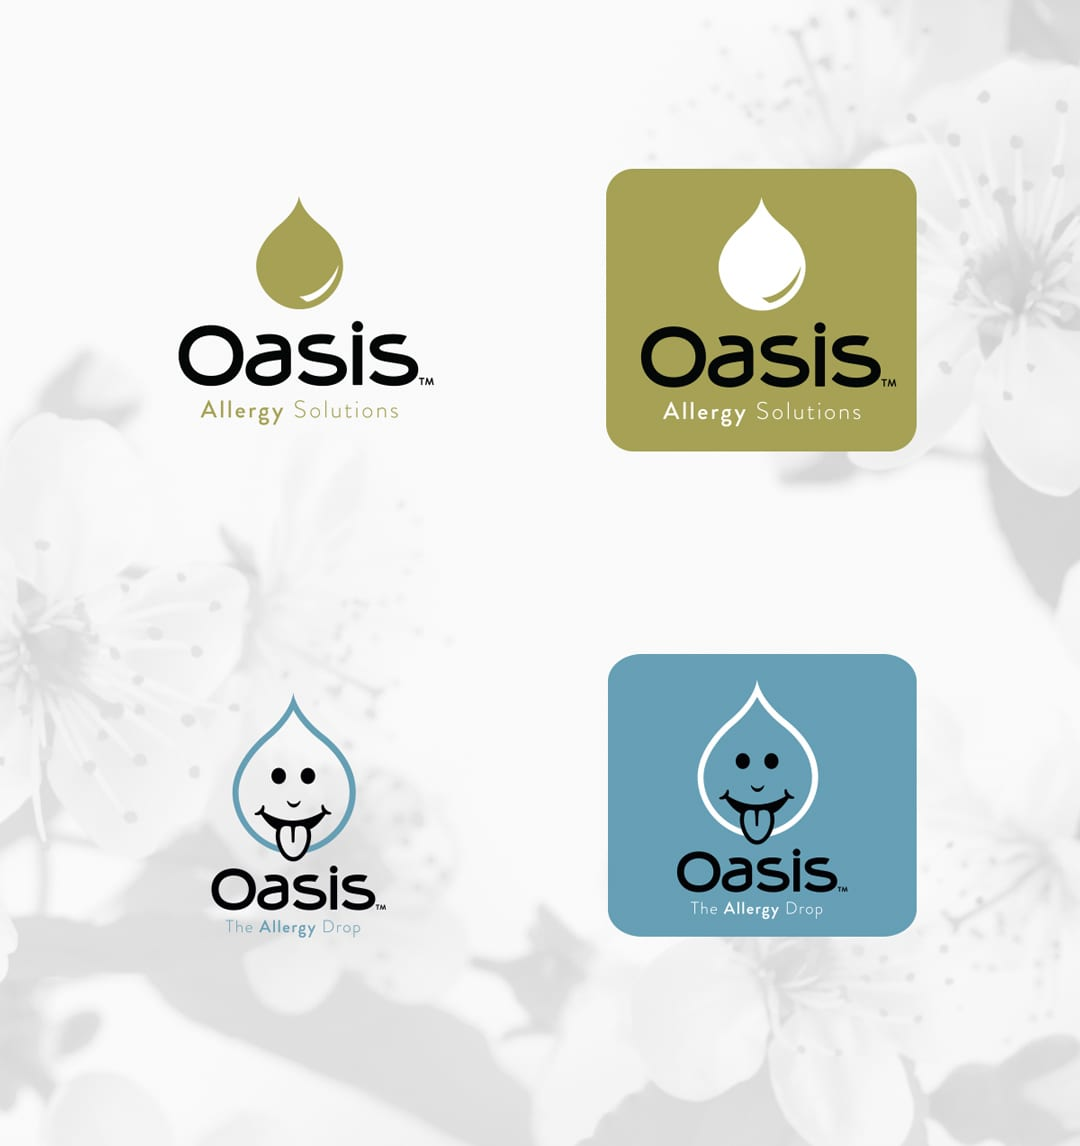 Oasis Allergy Logo Design by Liquid Media